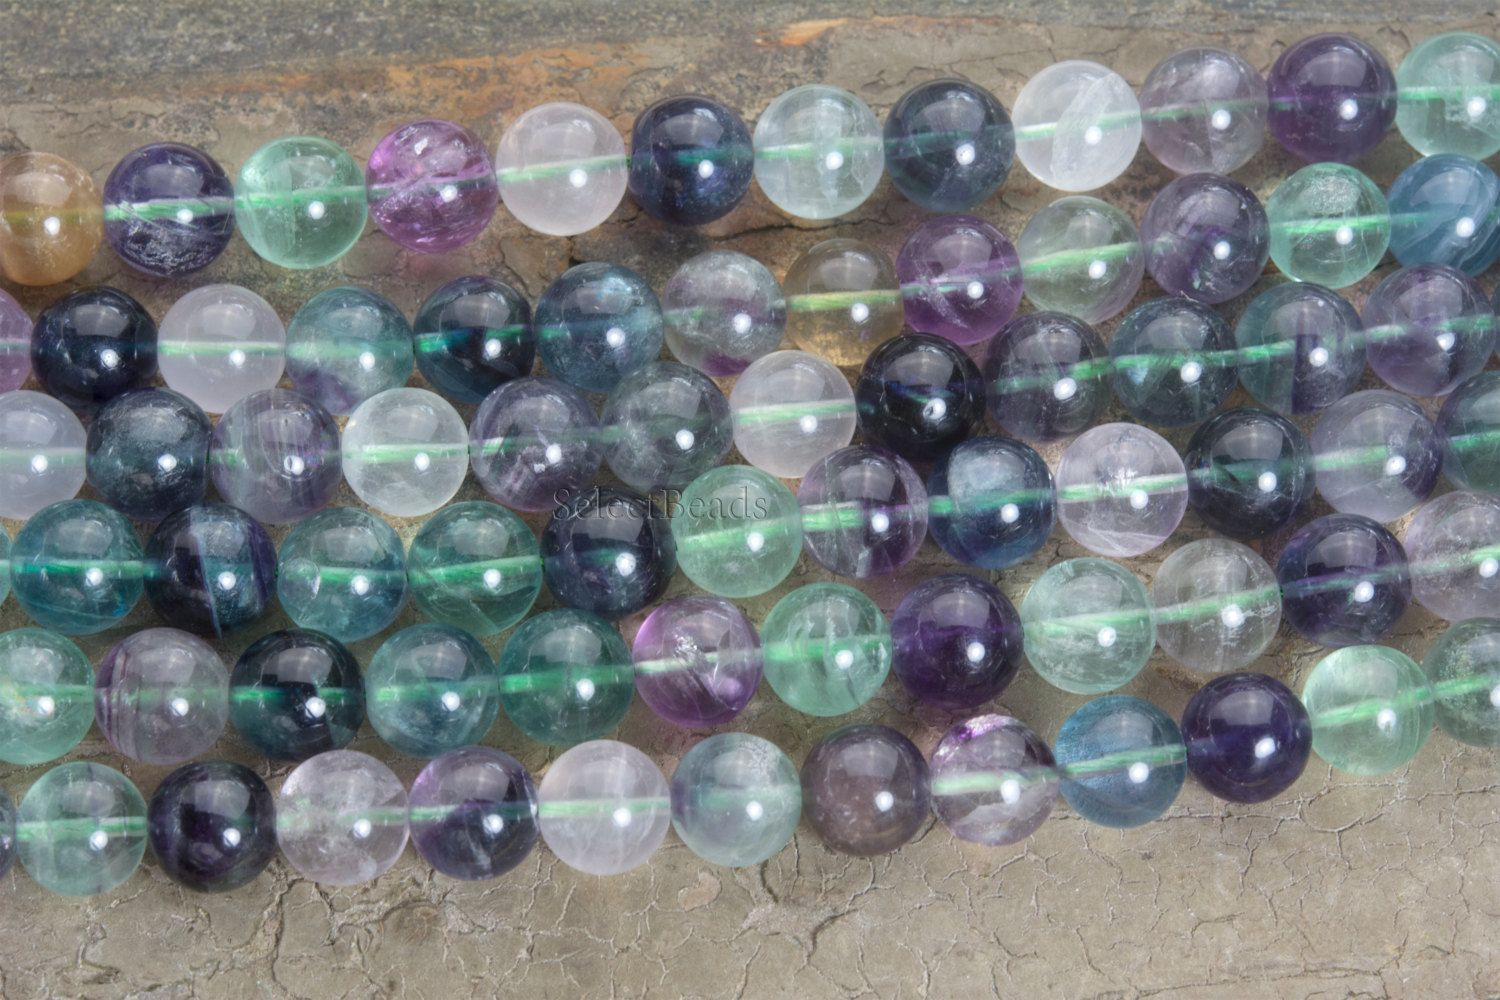 Rainbow Fluorite Gemstone Beads 12mm Natural Fluorite Beads Colorful Jewelry Beads Natural Stone Beads Gemstone Beads Rainbow Gemstones Rainbow Fluorite